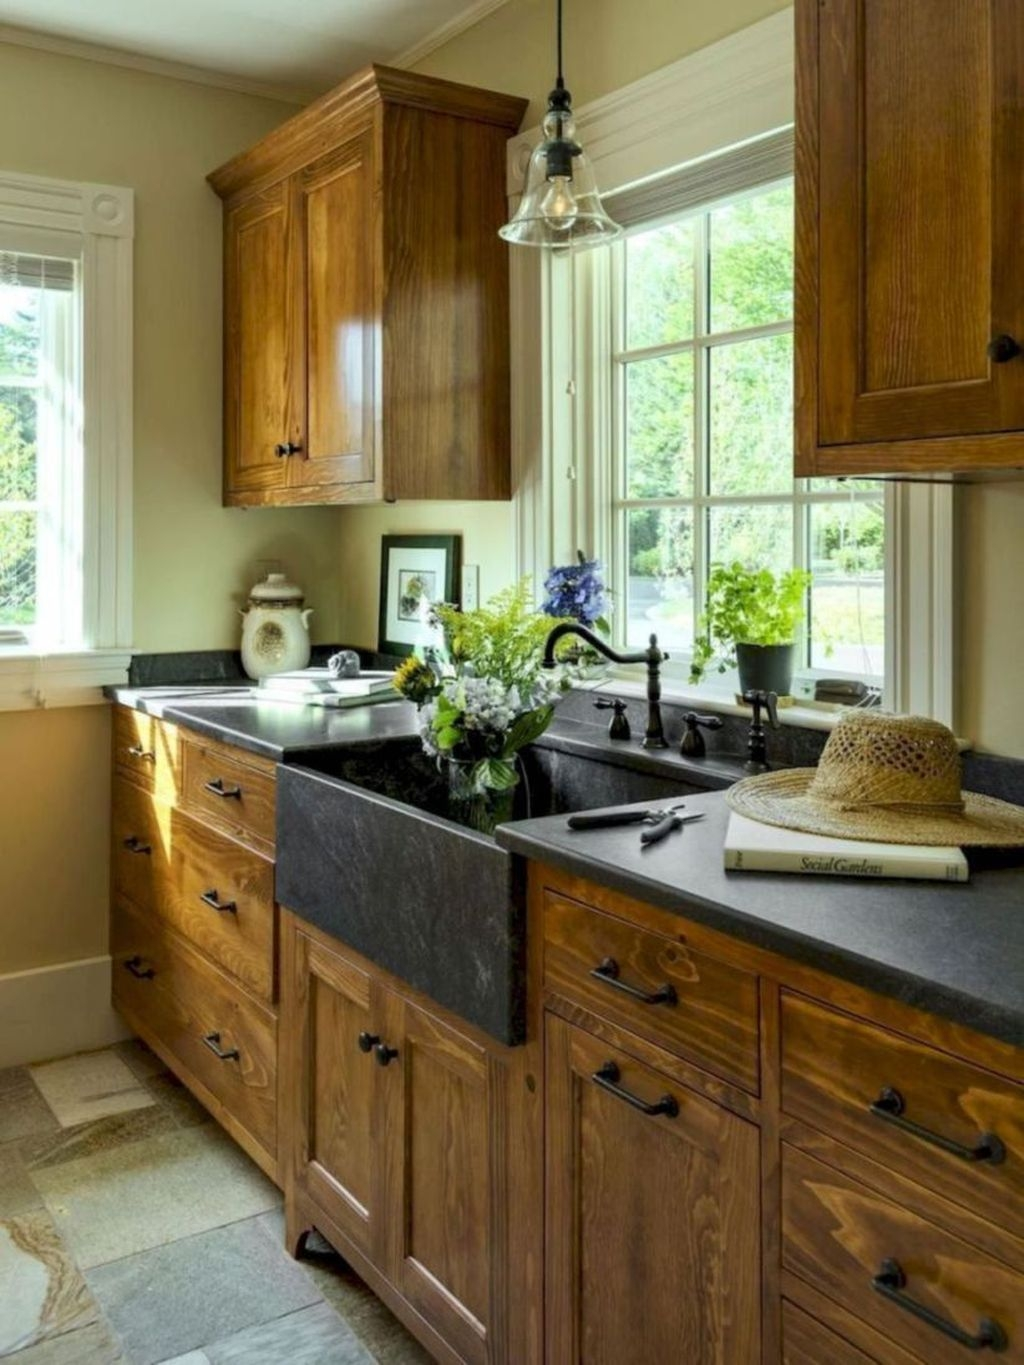 Incredible Farmhouse Kitchen Cabinet Makeover Design Ideas22